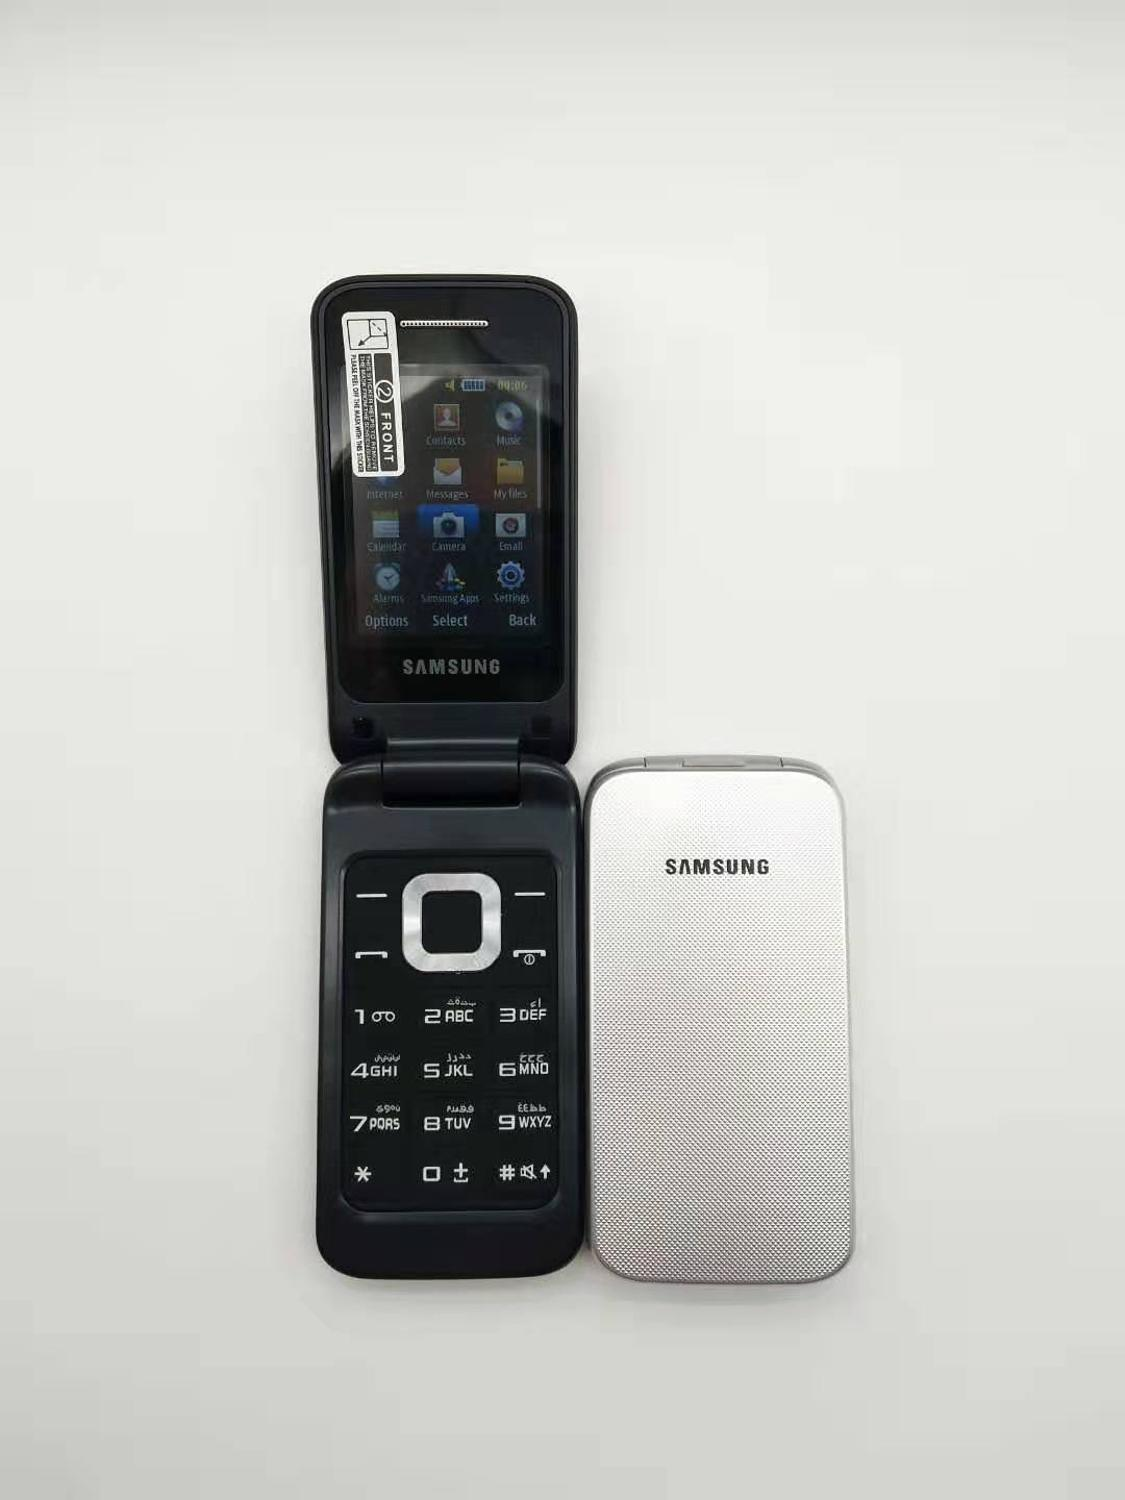 100% Original Unlocked SAMSUNG C3520 Mobile Phone English Russian Keyboard & One year warranty Free shipping